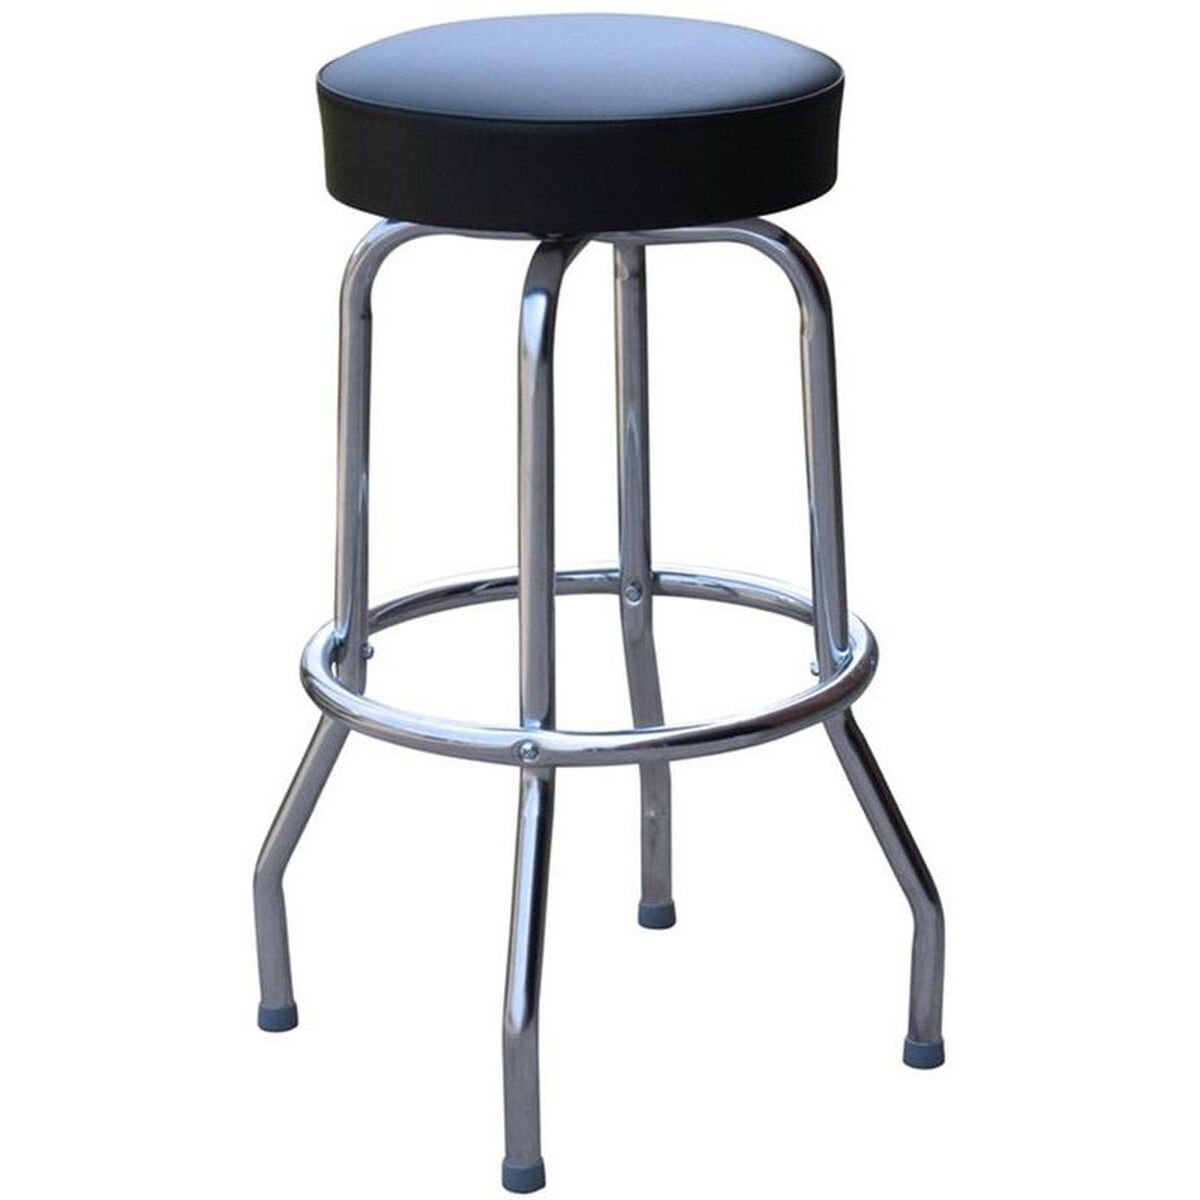 Black Vinyl Swivel Barstool 0 1950blk24 Restaurantfurniture4lesscom